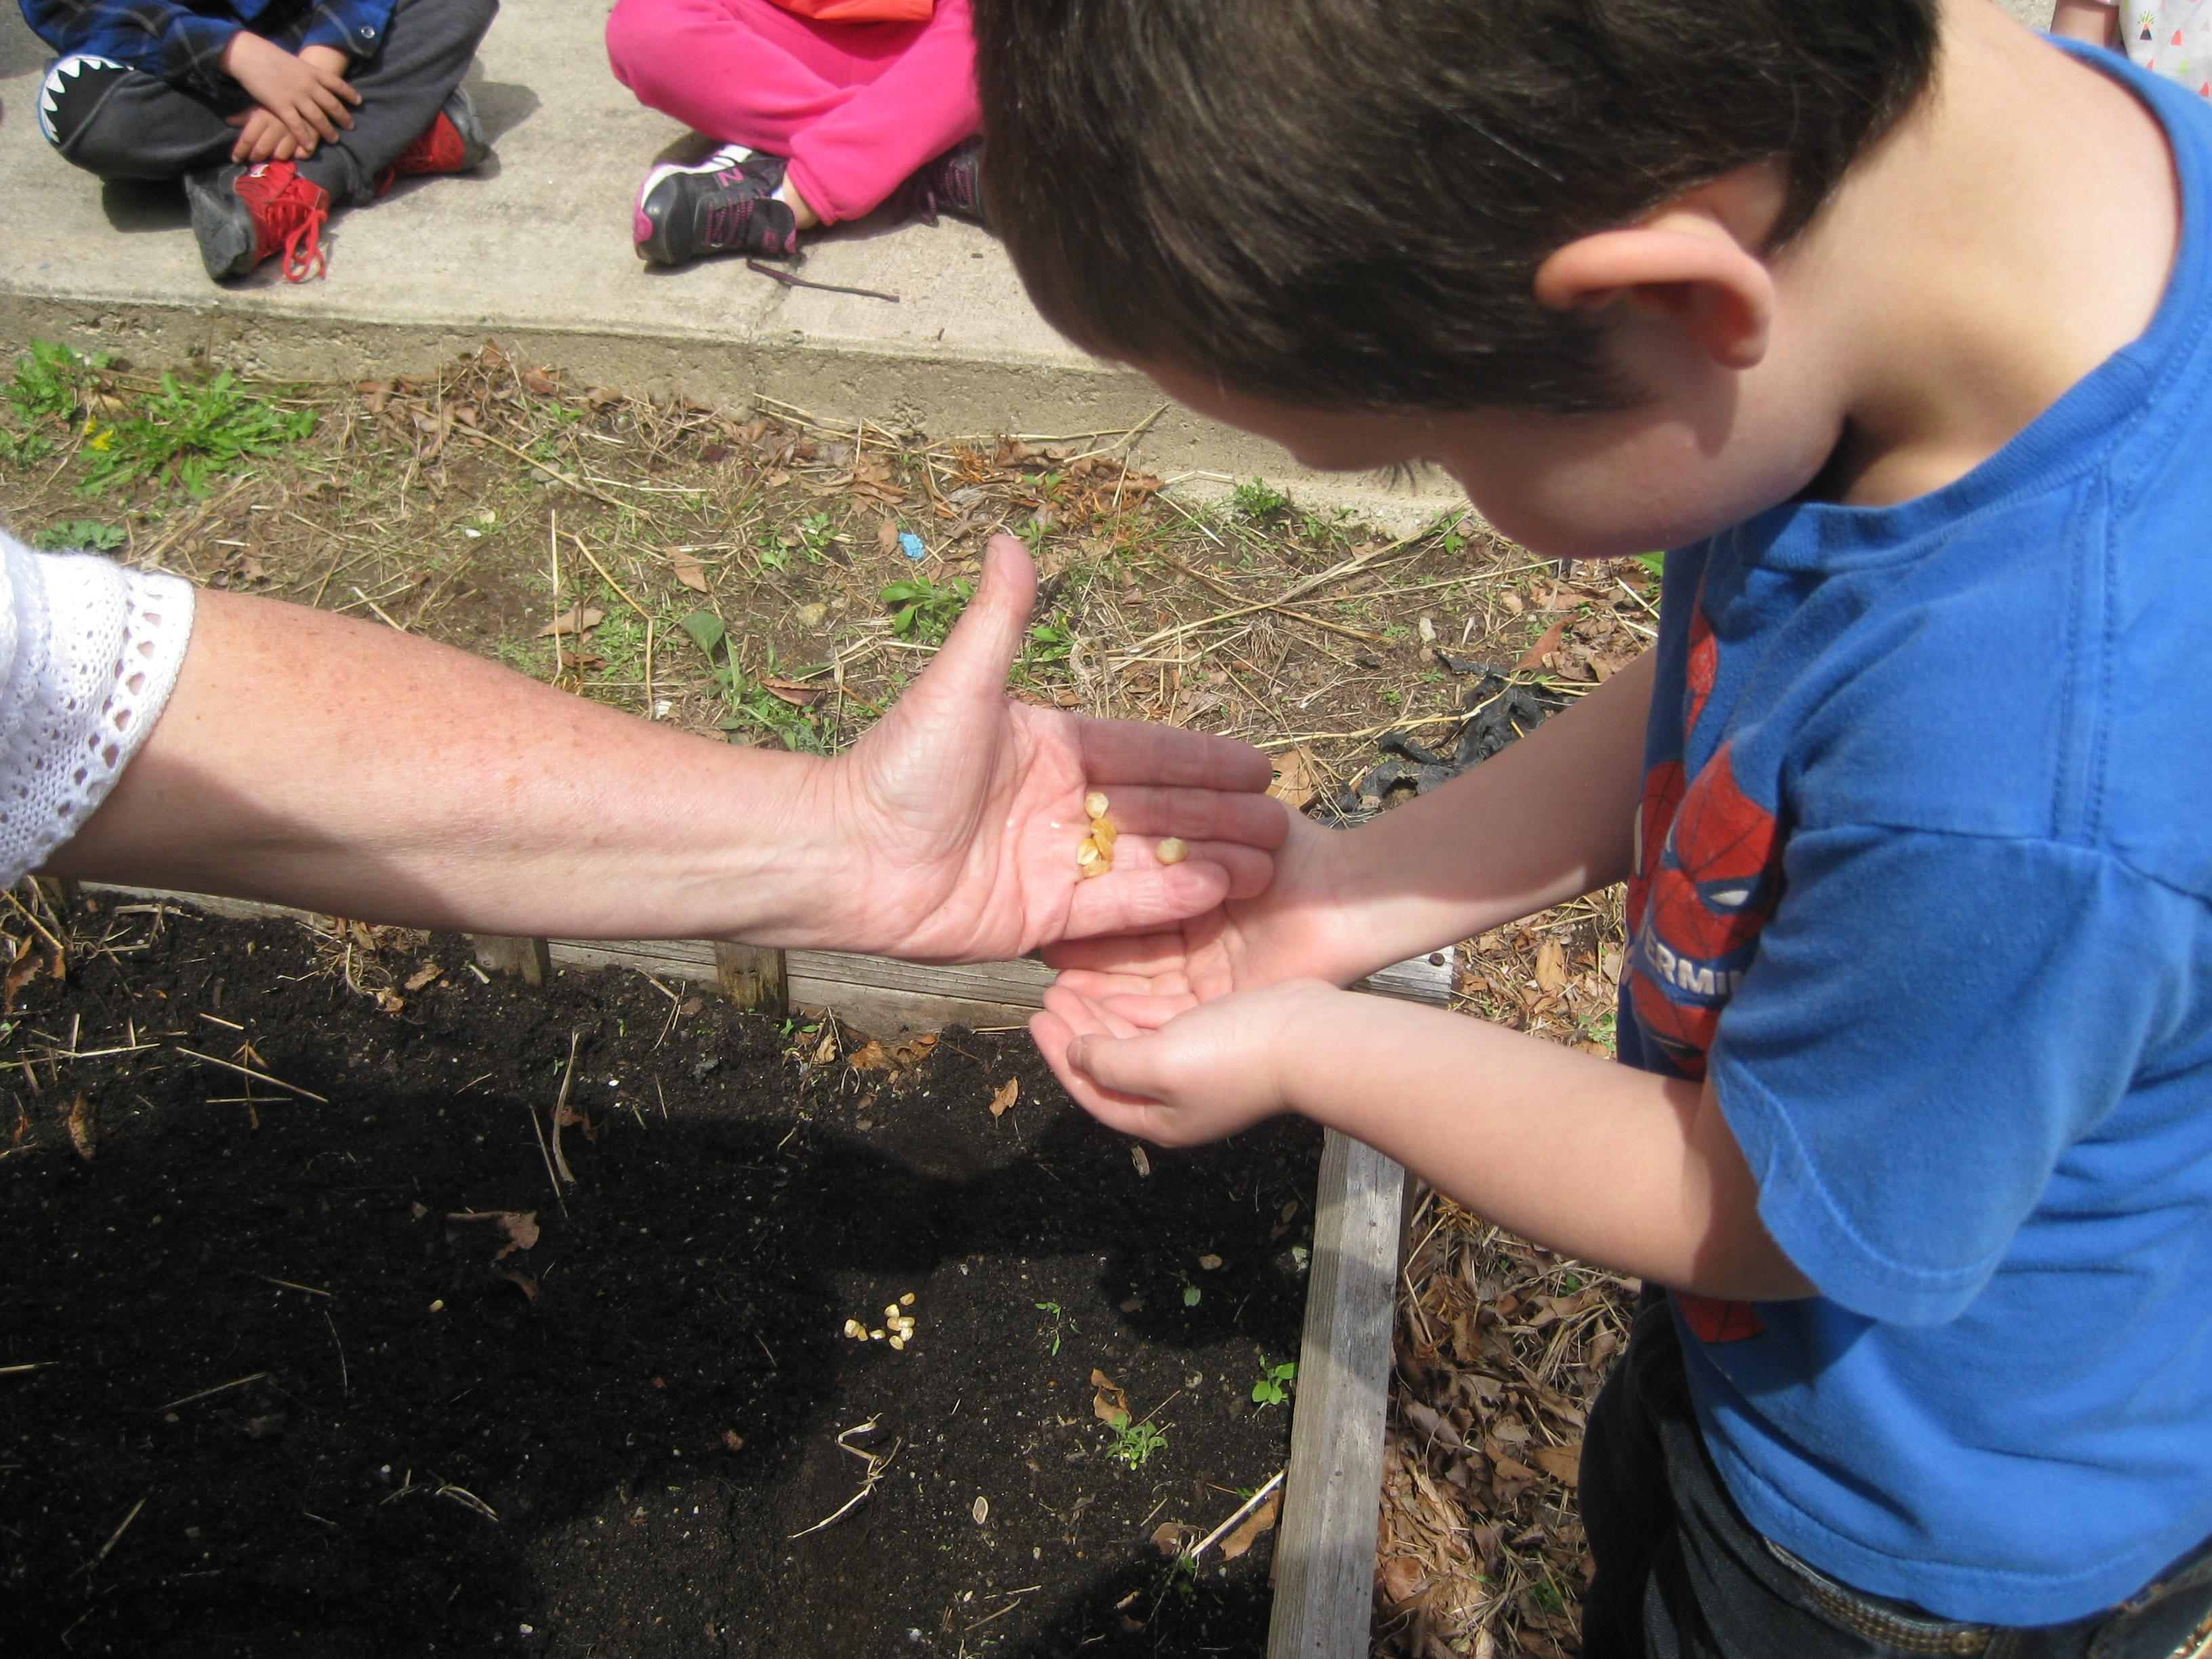 photo of a gardening activity at Eastford Road Elementary School